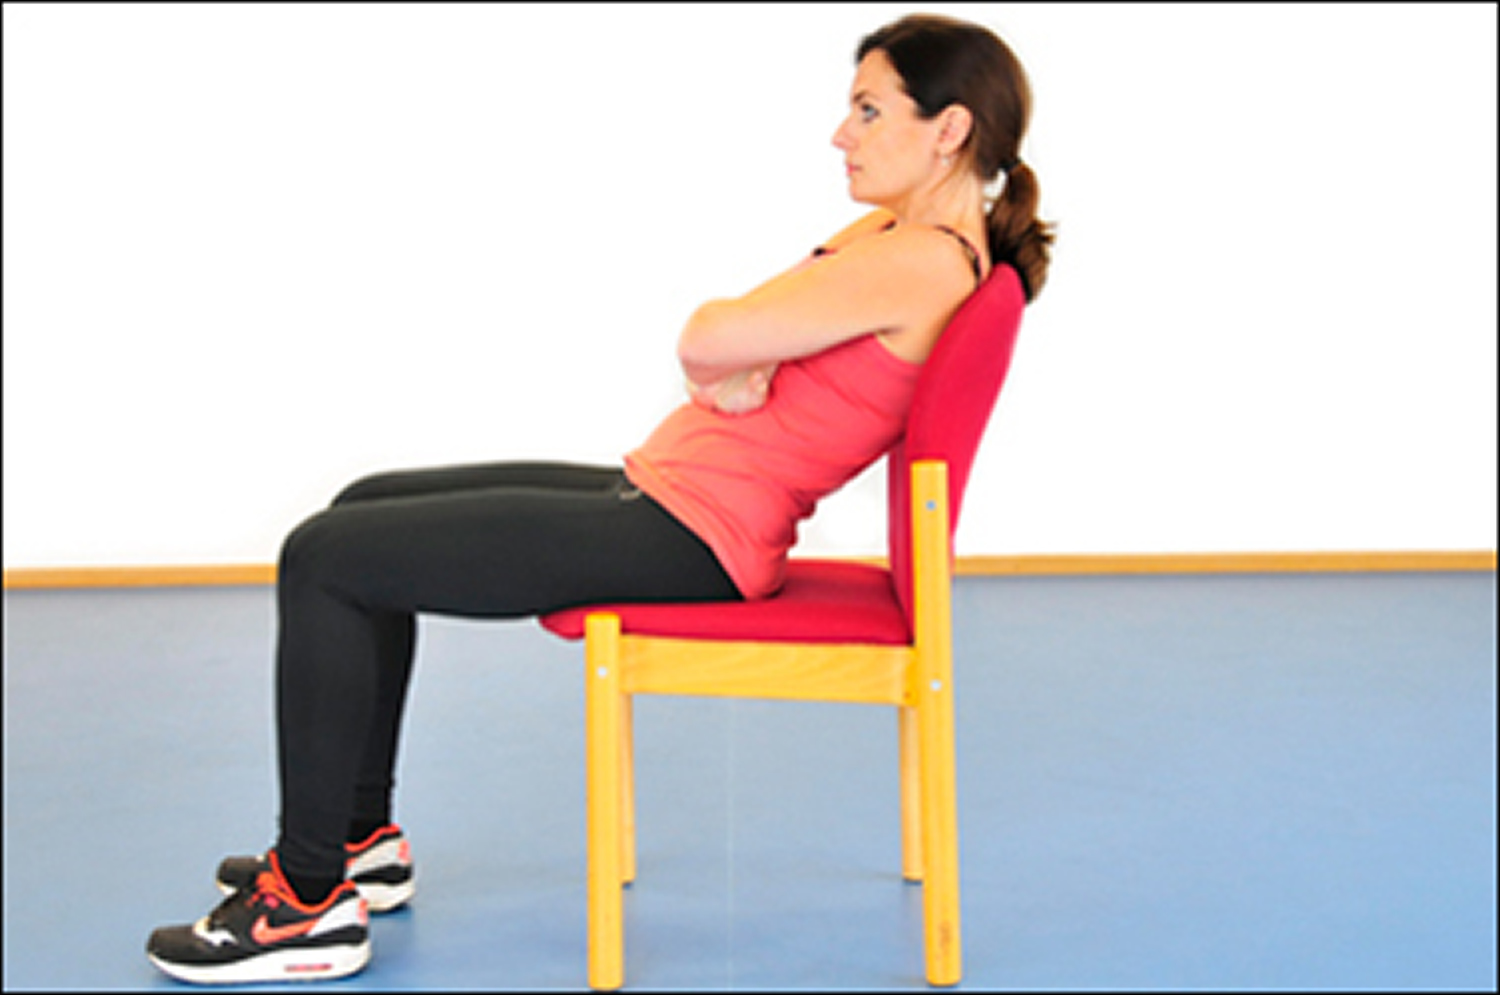 bad sitting posture - slouching in a chair